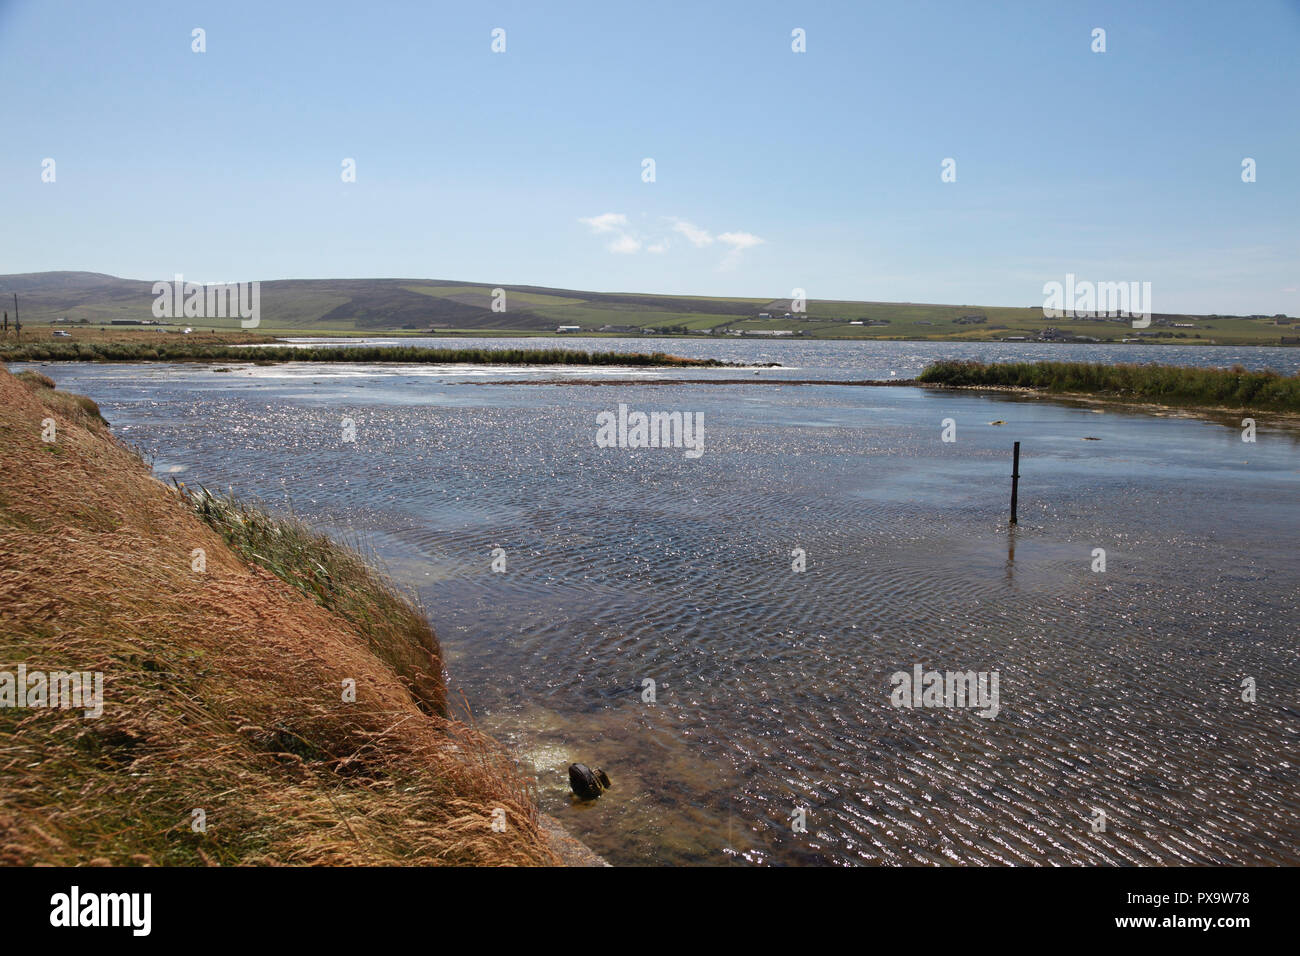 The Loch of Stenness, Orkney, looking towards Hoy, seen from the Bridge of Brodgar - Stock Image